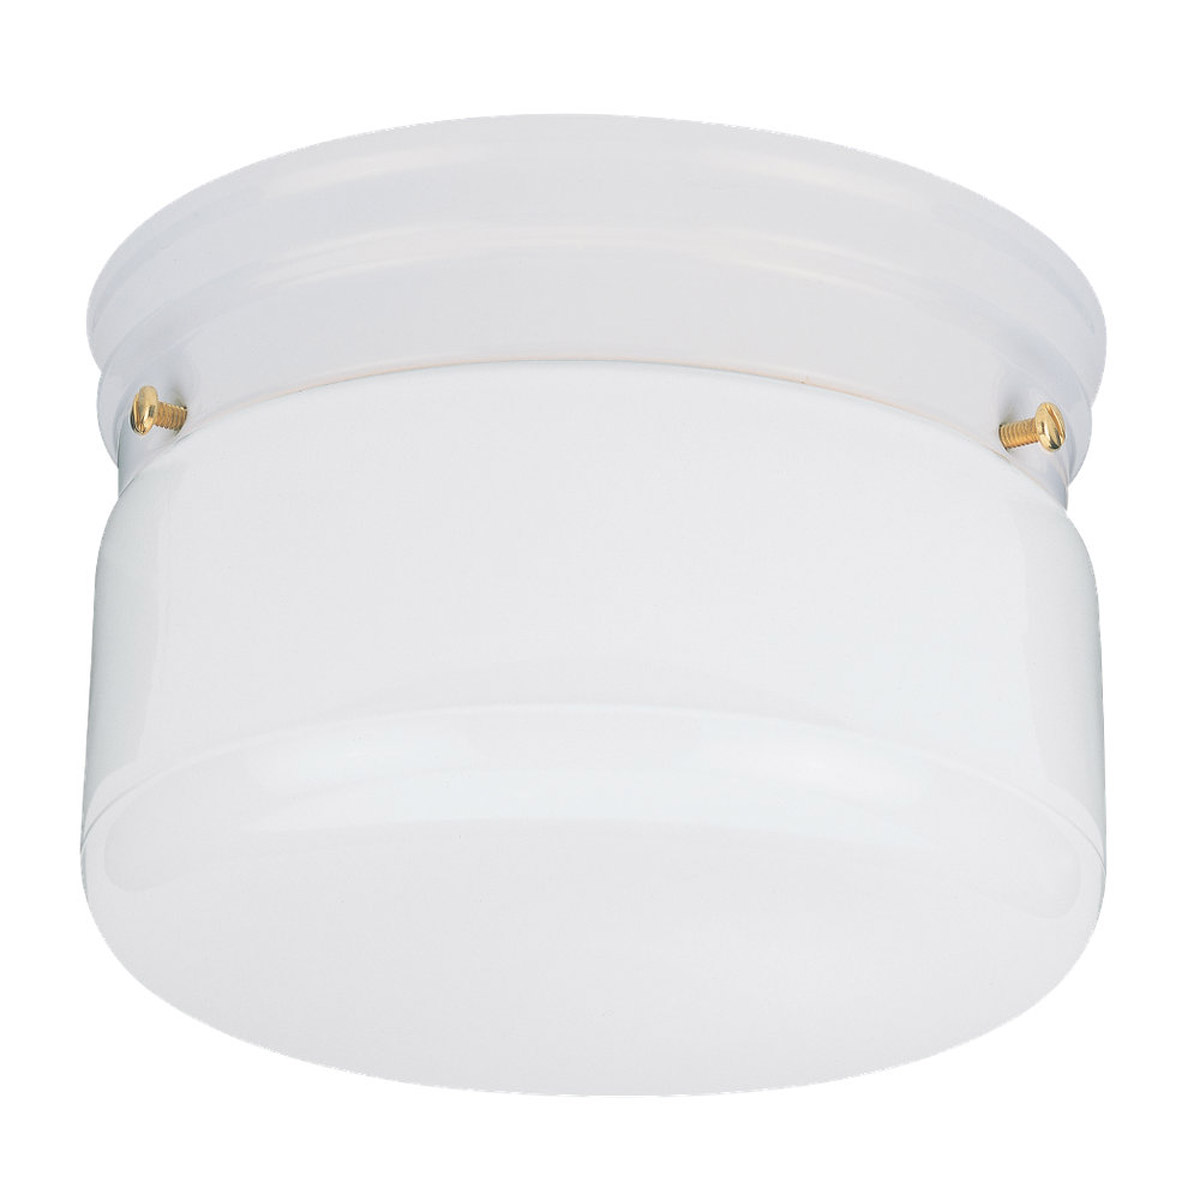 Sea Gull Lighting Economy Flush Mount 2 Light Flush Mount in White 5323-15 photo